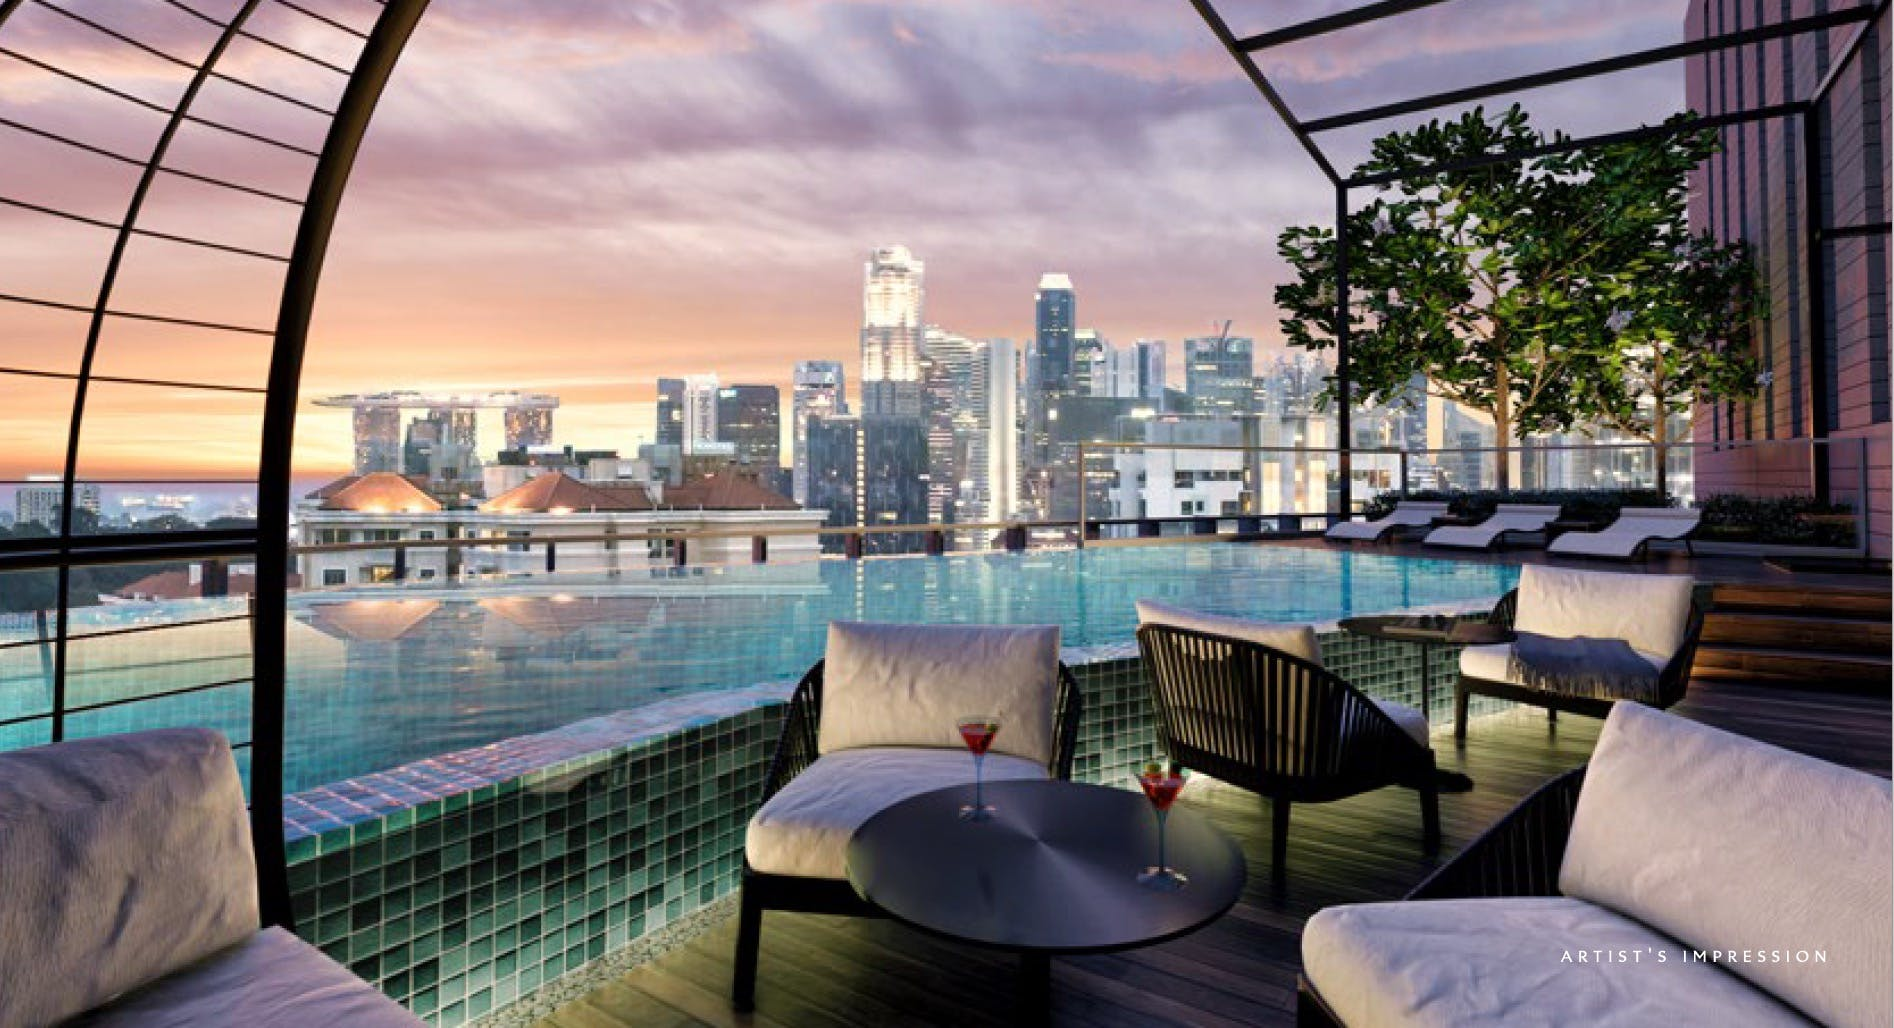 An awe-inspiring view from The Iveria's infinity pool.